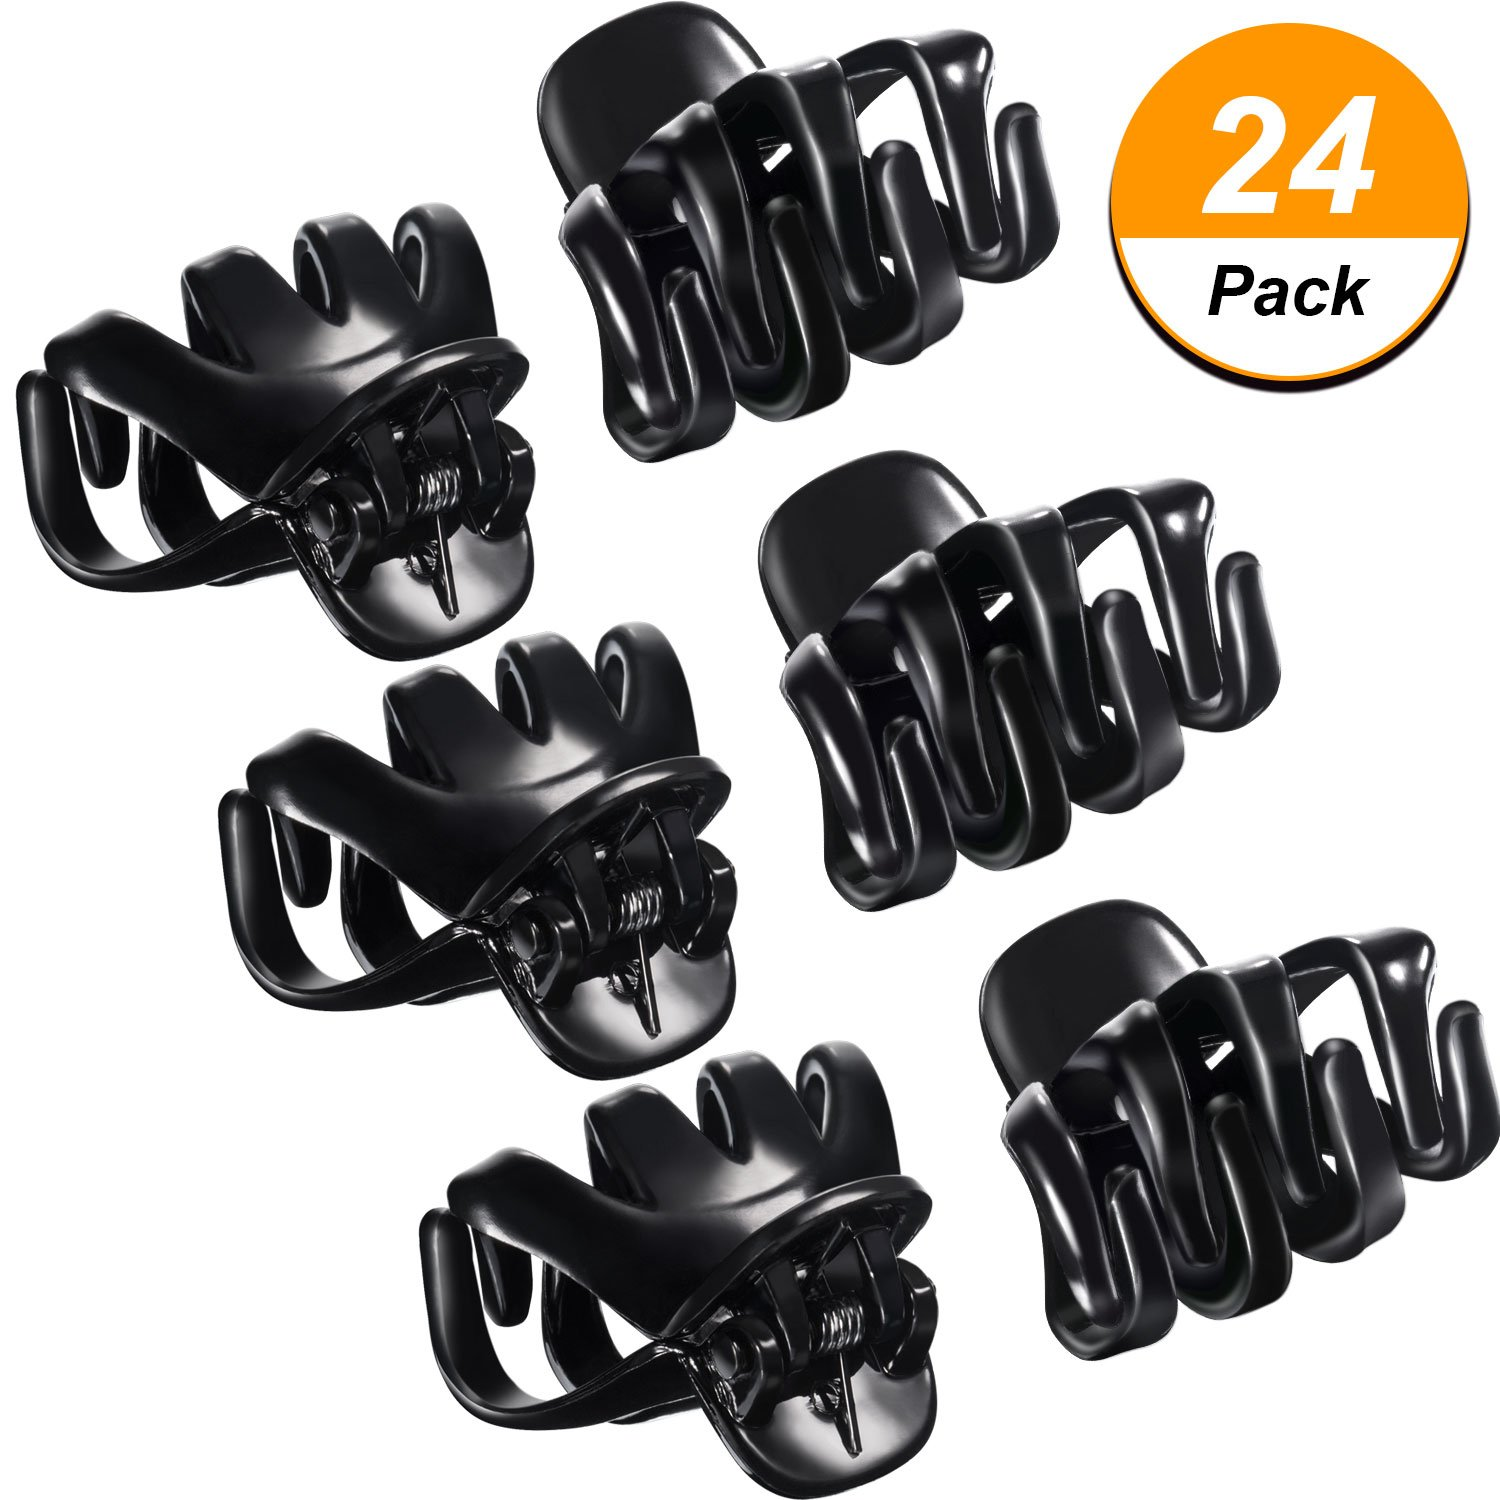 24 Packung 3 cm Mini Grip Octopus Clip Spinne Kiefer Haar Klaue Clips (Braun) Bememo